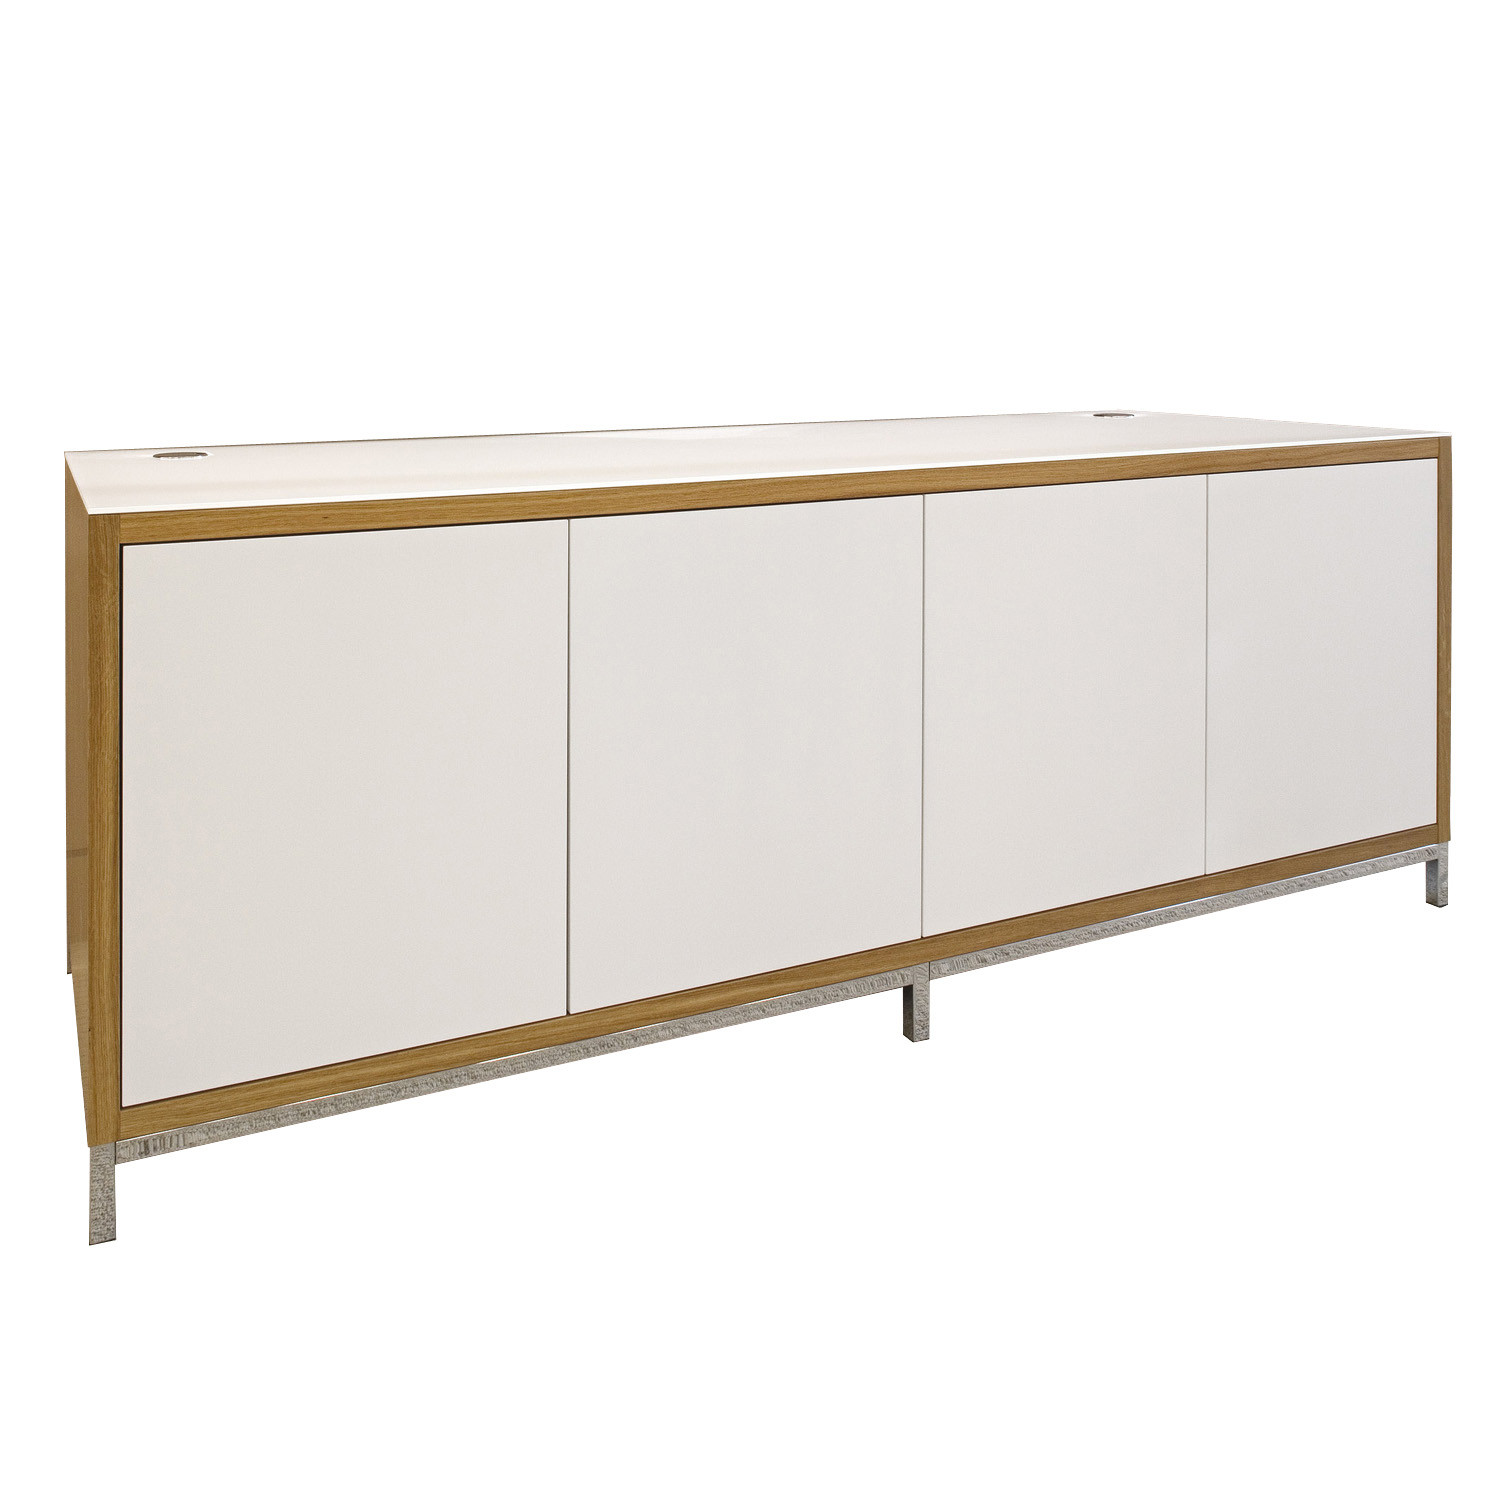 Custom Made Credenzas from Apres Furniture